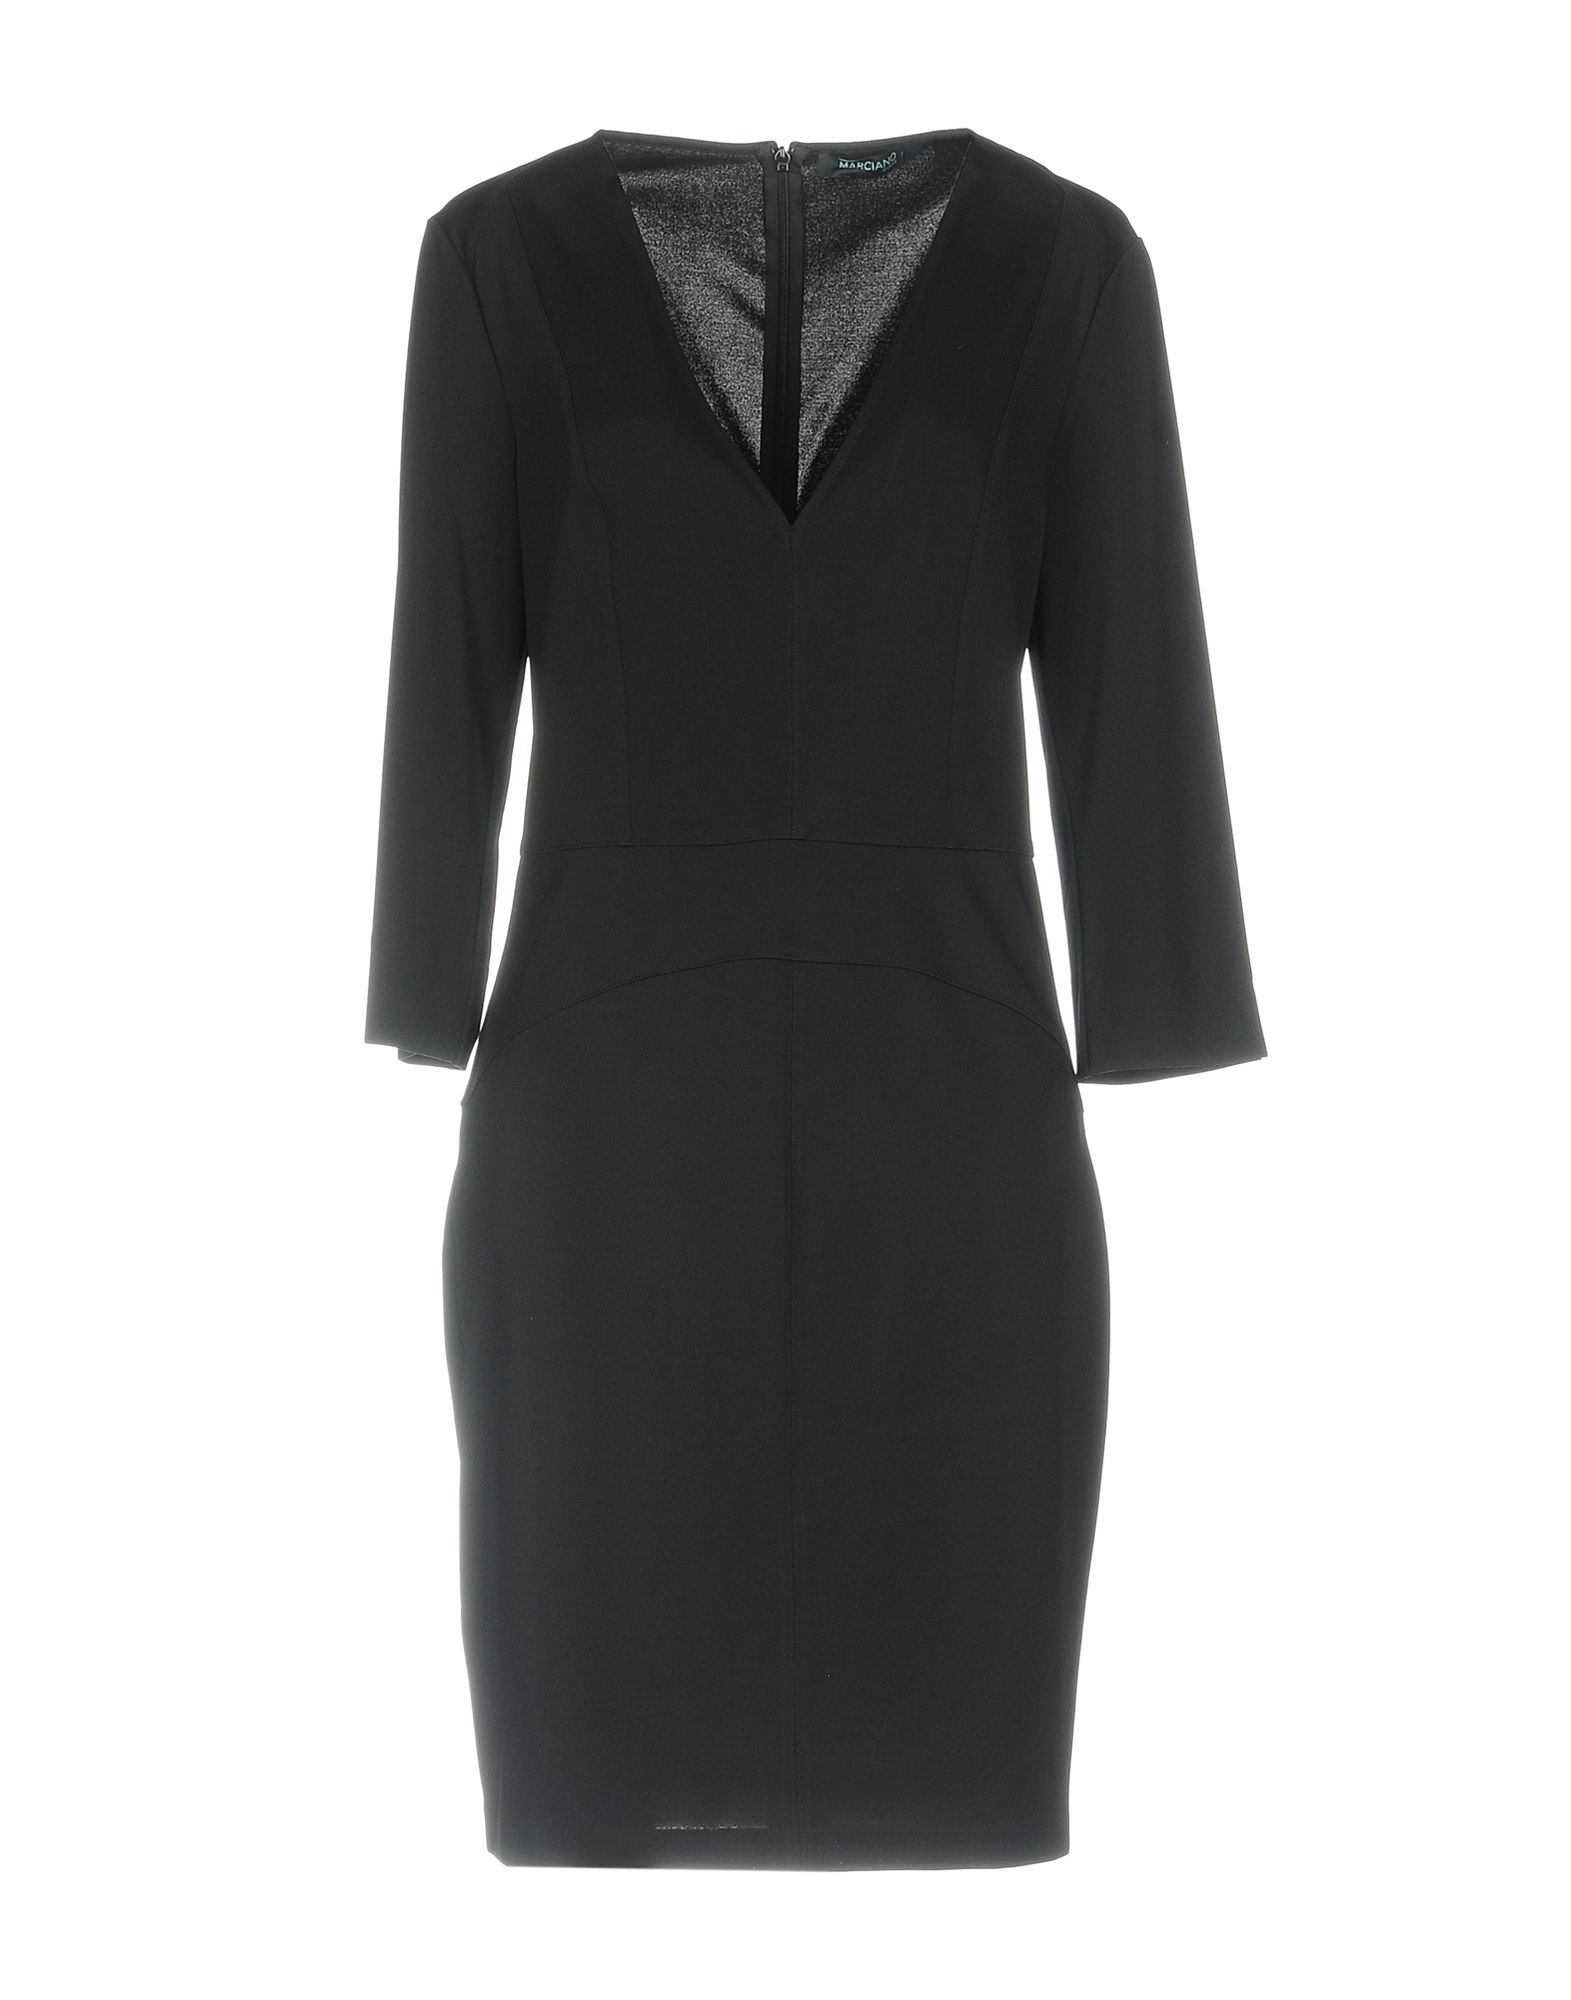 GUESS BY MARCIANO Короткое платье платье marciano guess 74g80k 5355z a996